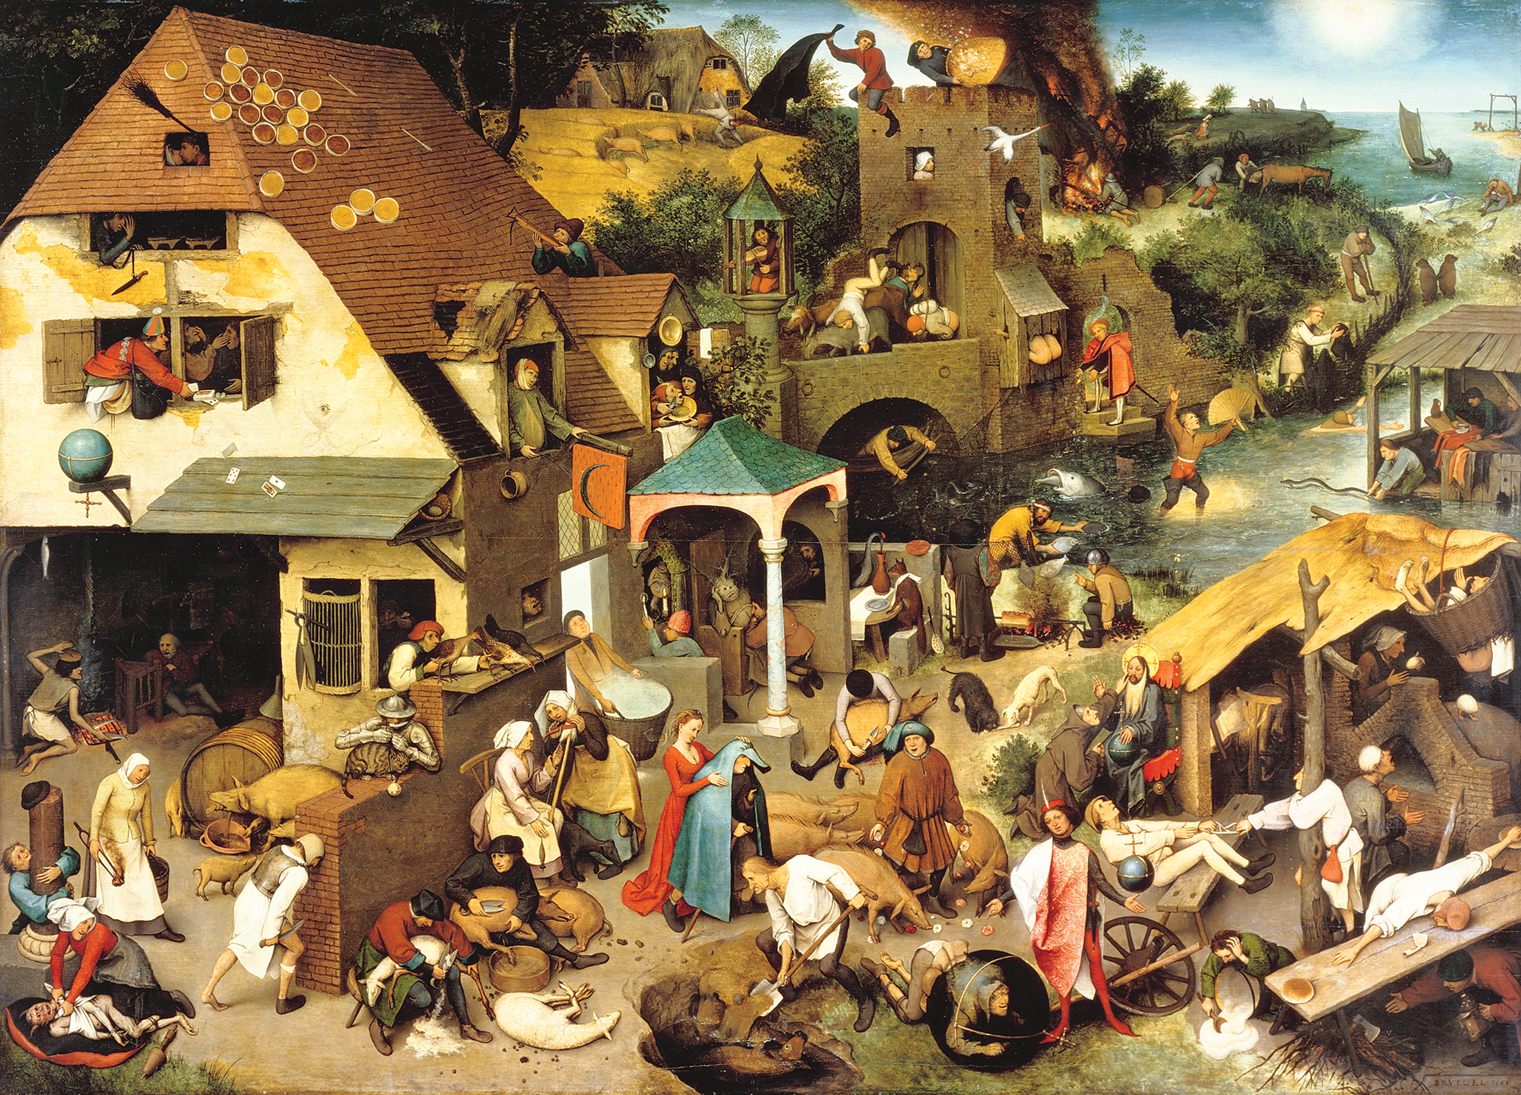 """In 1559, Dutch artist Pieter Bruegel created the oil painting """"Netherlandish Proverbs"""" which illustrates many Dutch proverbs to praise the Dutch culture."""